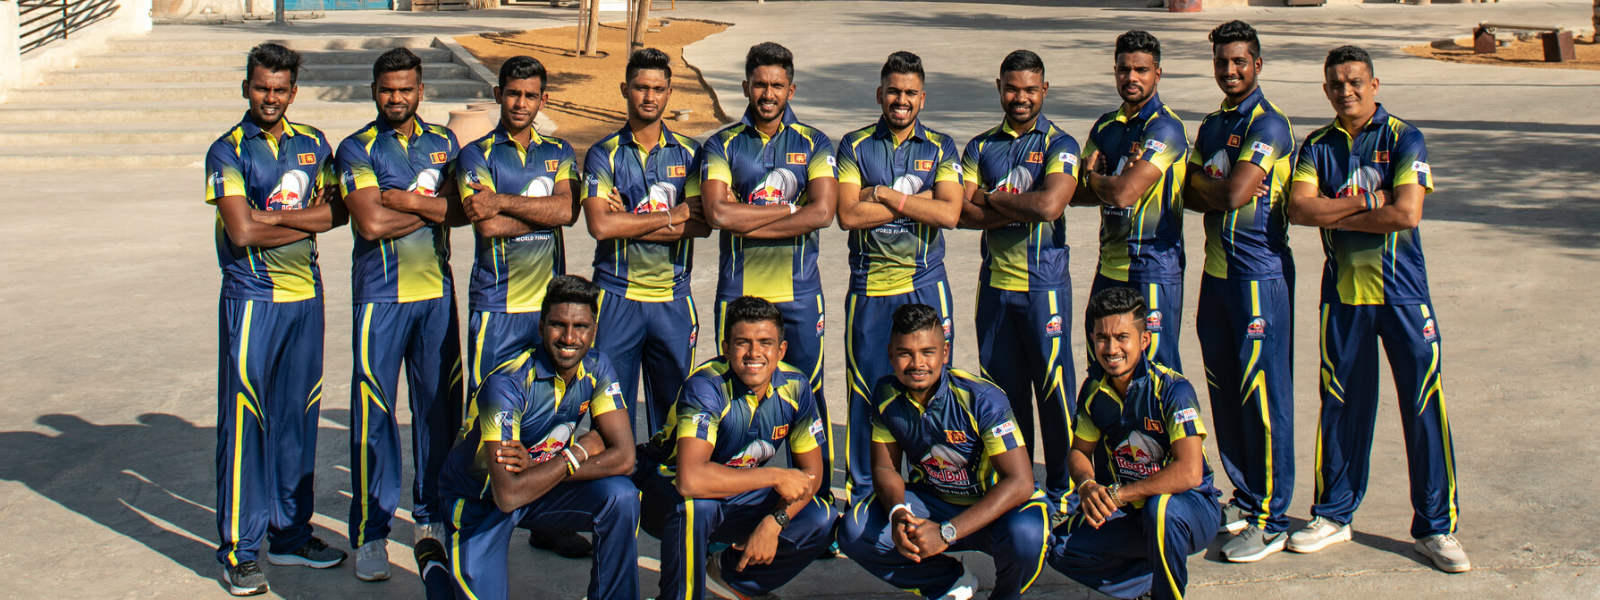 Red Bull Campus Cricket National Champions ICBT set to represent Sri Lanka at the World Finals in Dubai